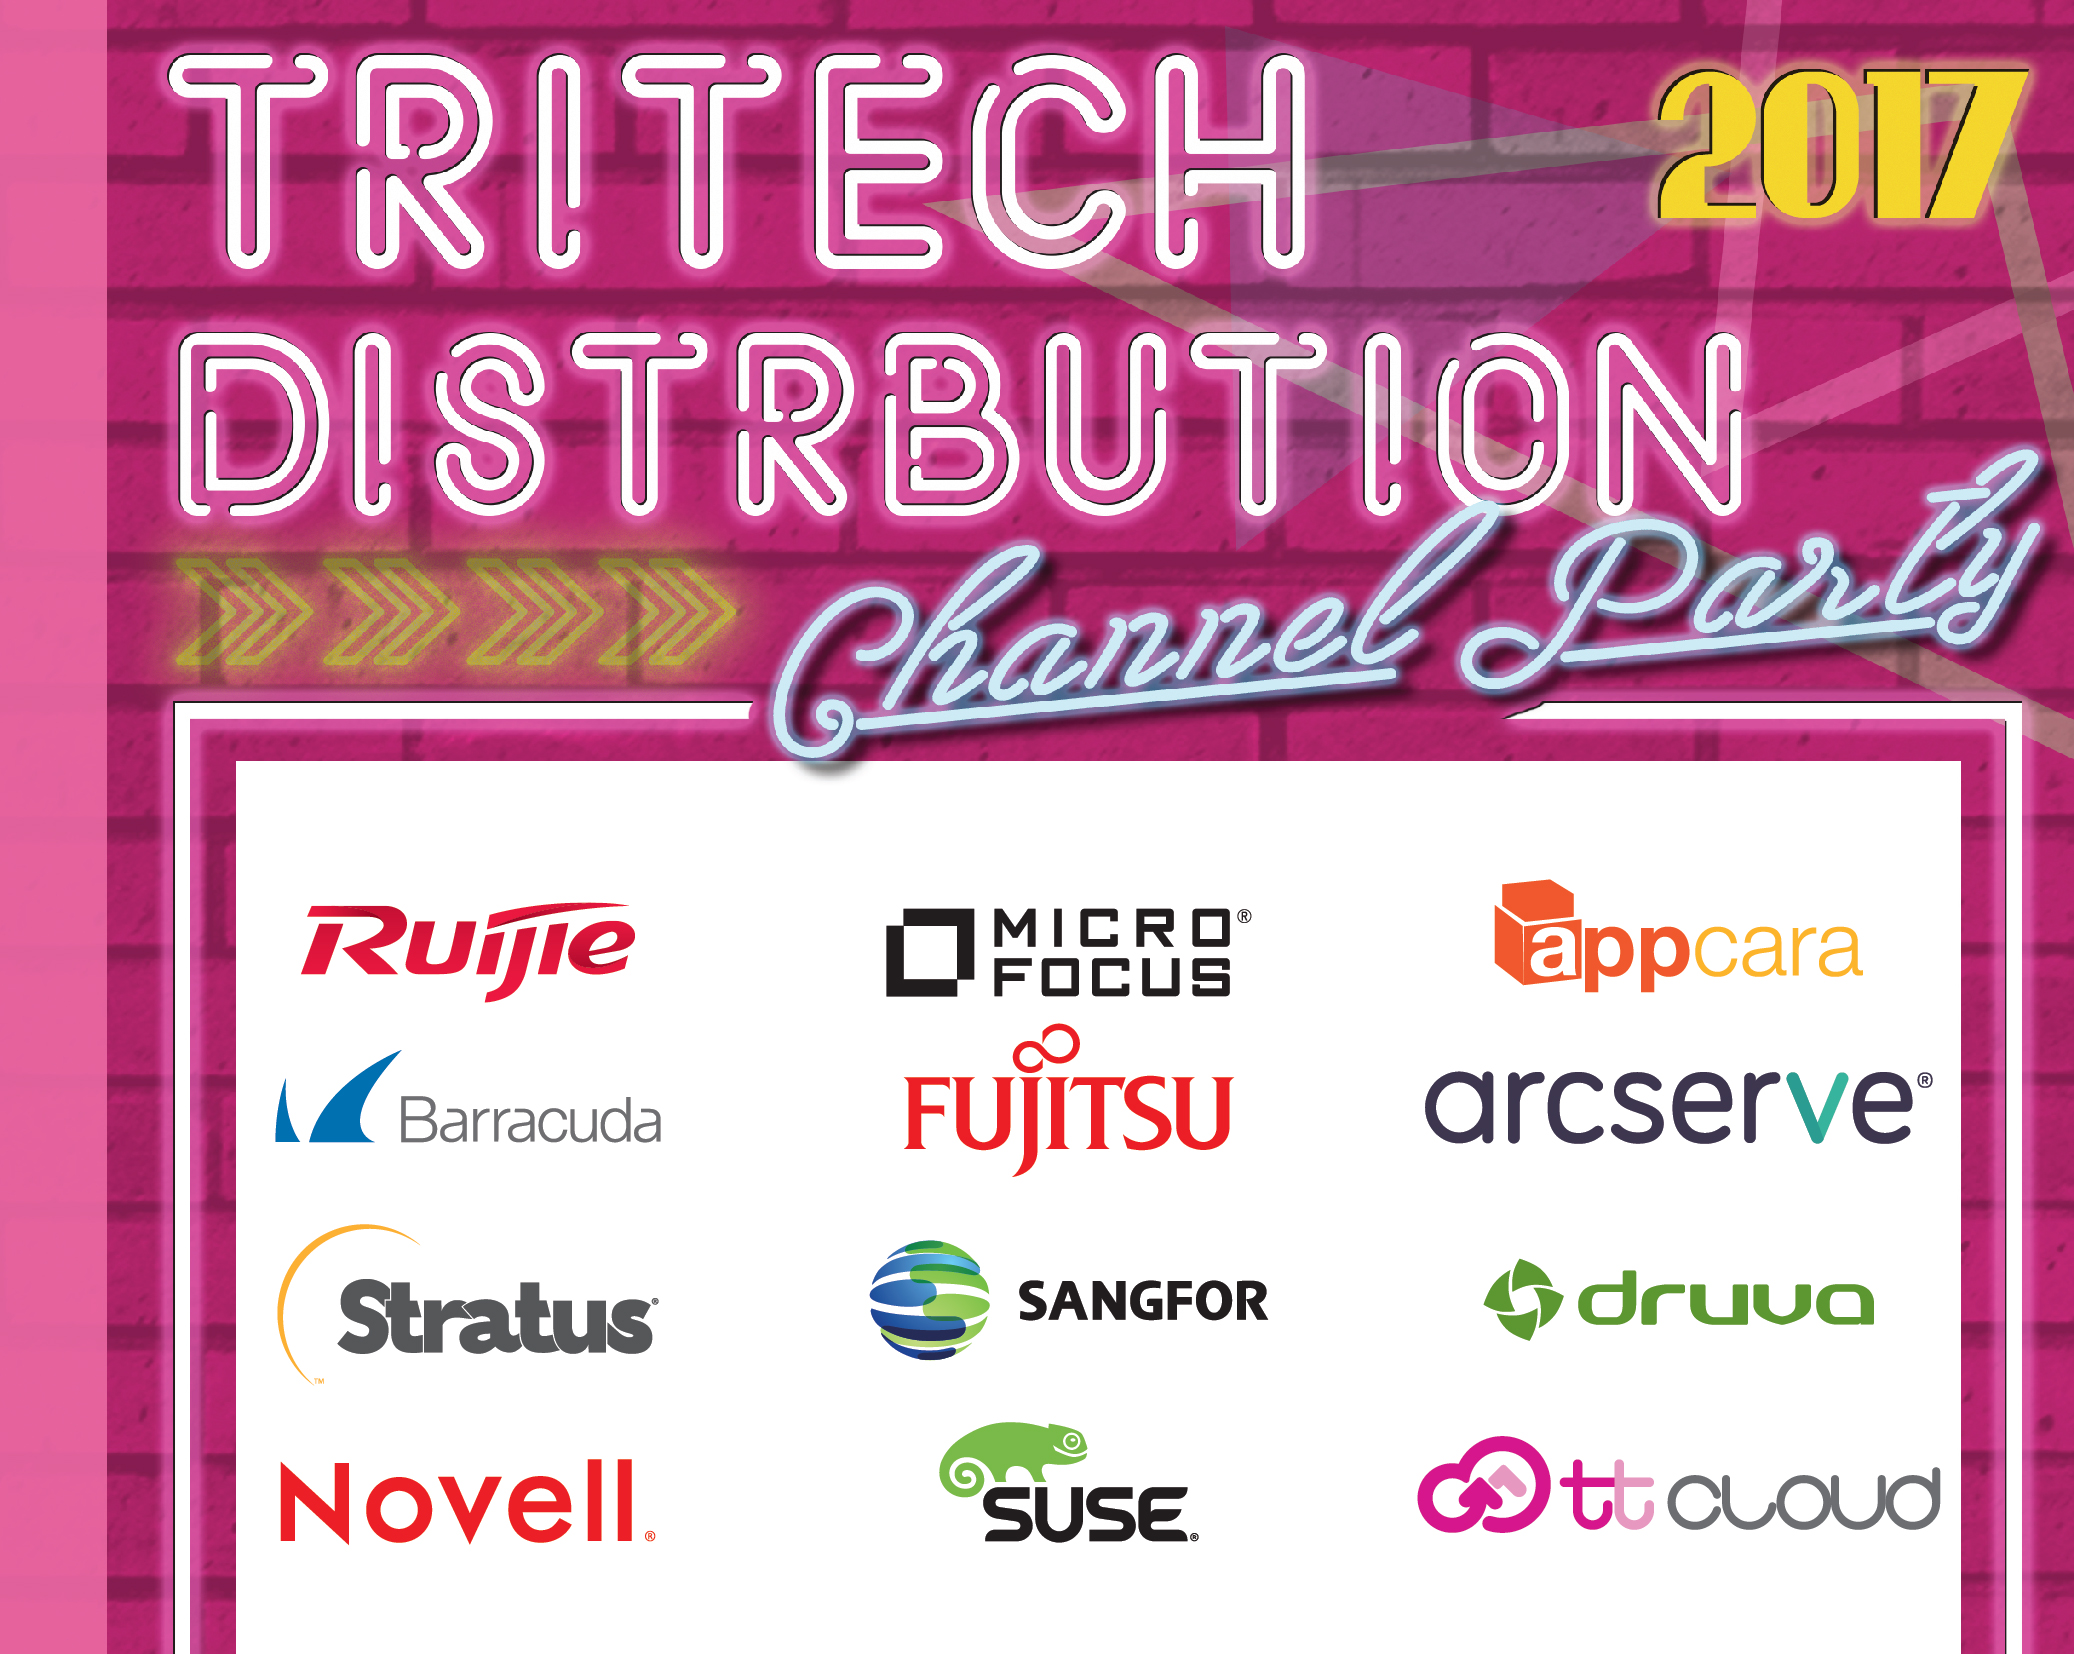 TriTech Distribution